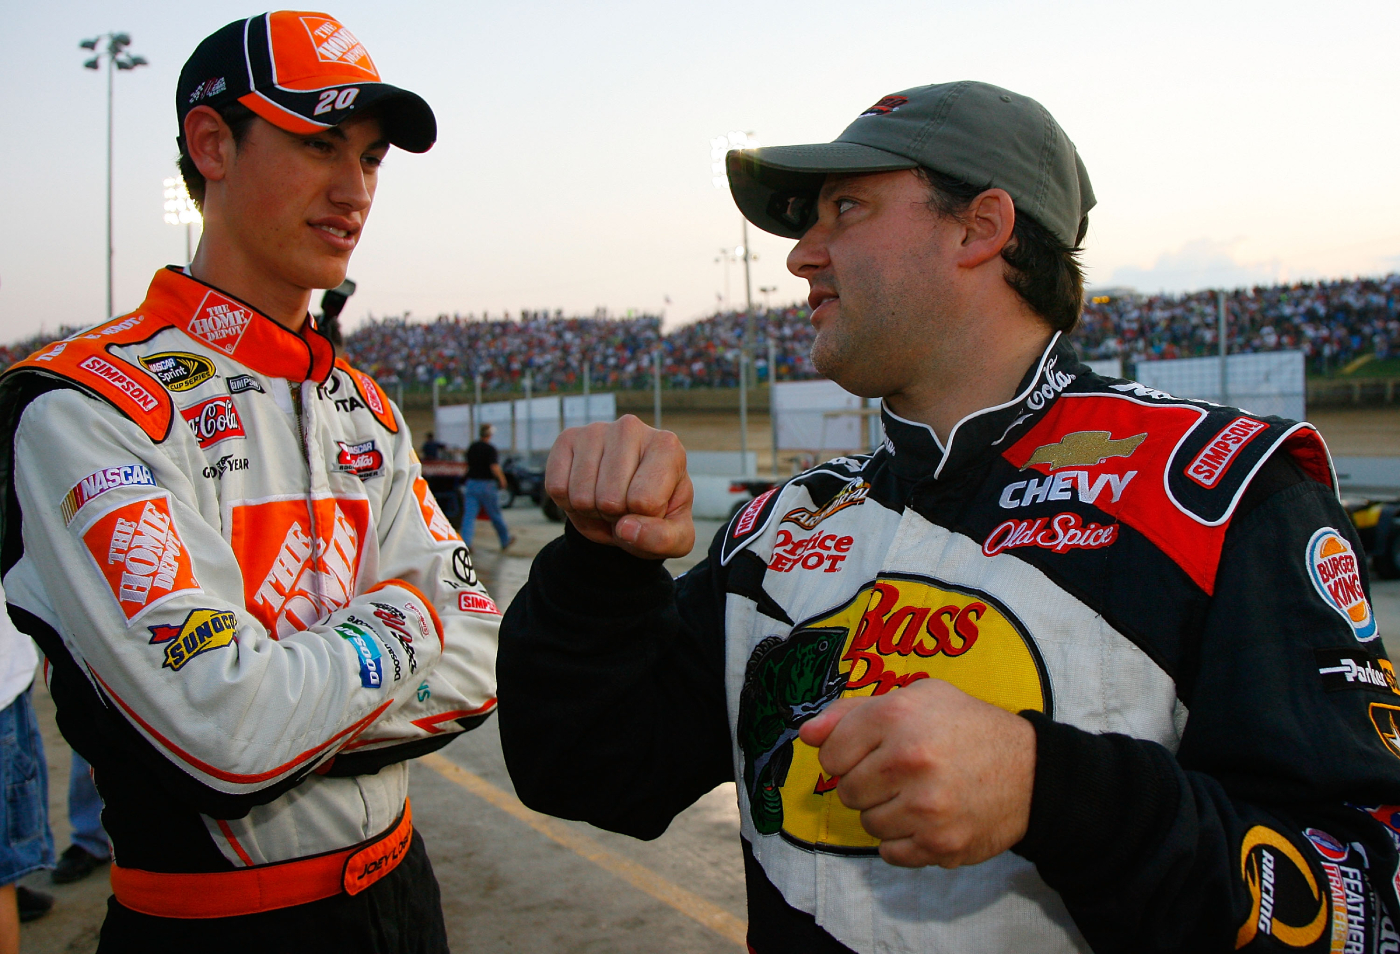 Tony Stewart is a NASCAR legend. However, Joey Logano wasn't too afraid of his legendary status, which led to a stern reply from Stewart.